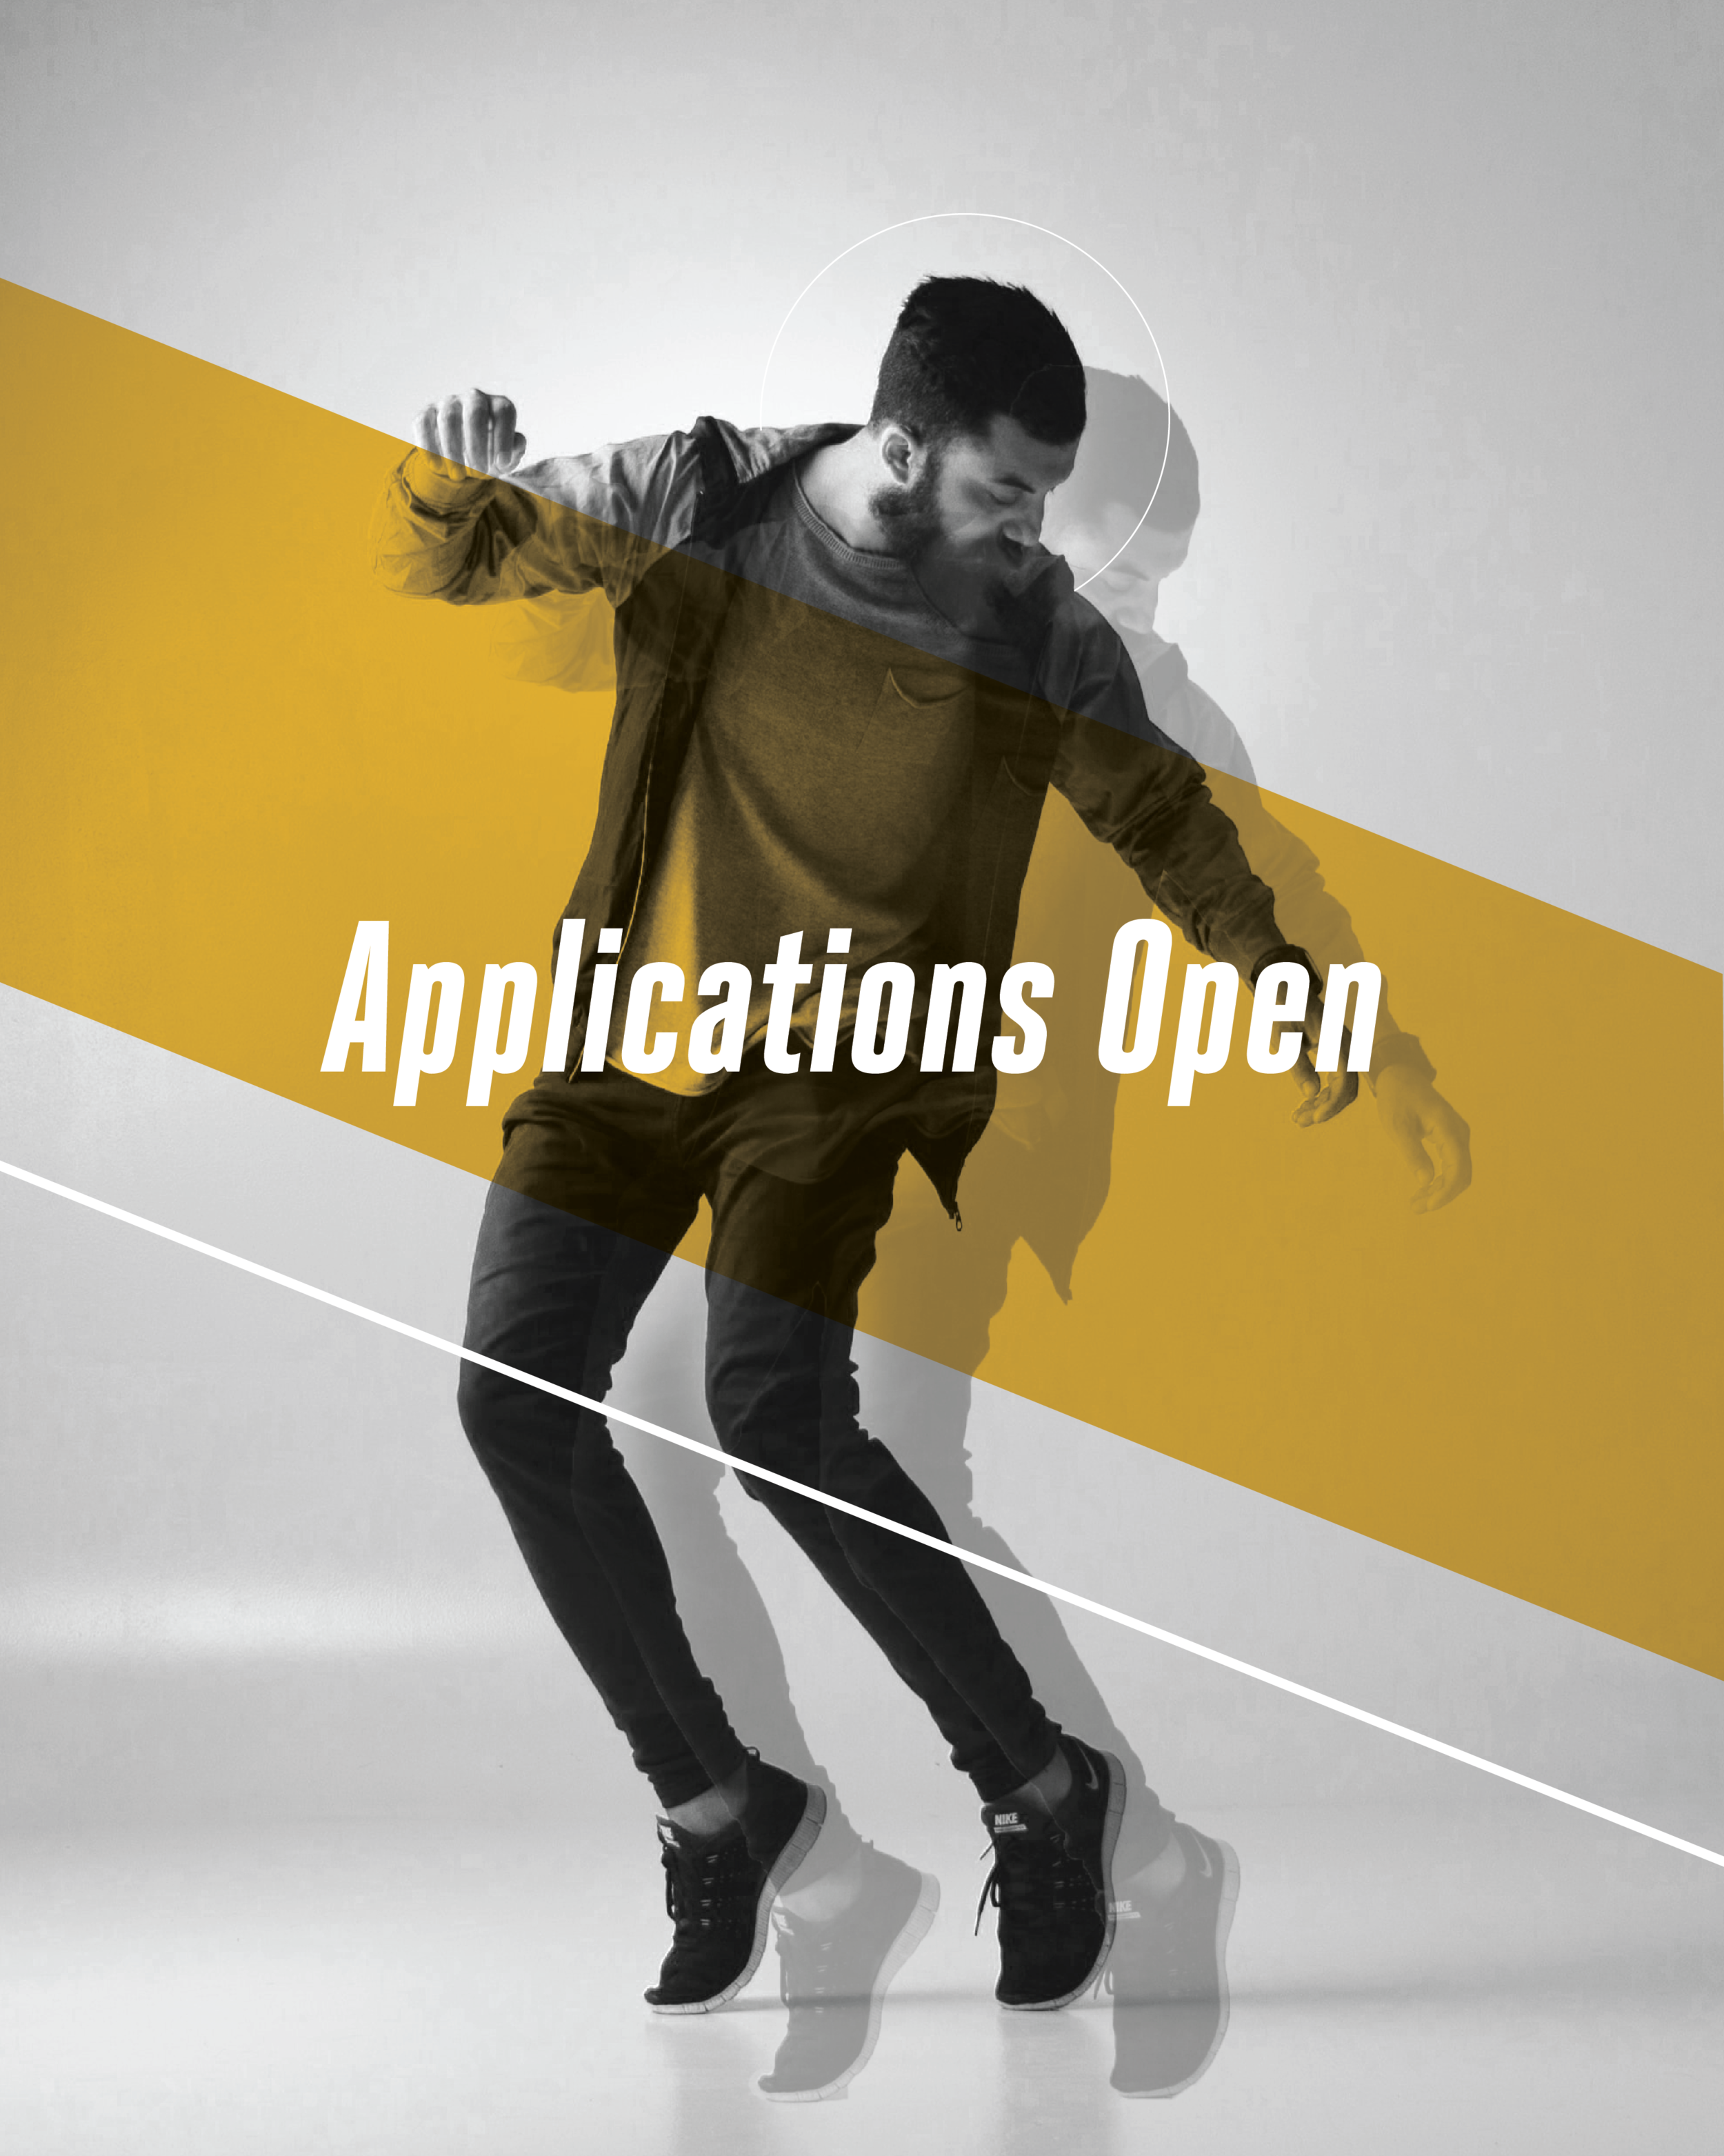 applications_open-10.png